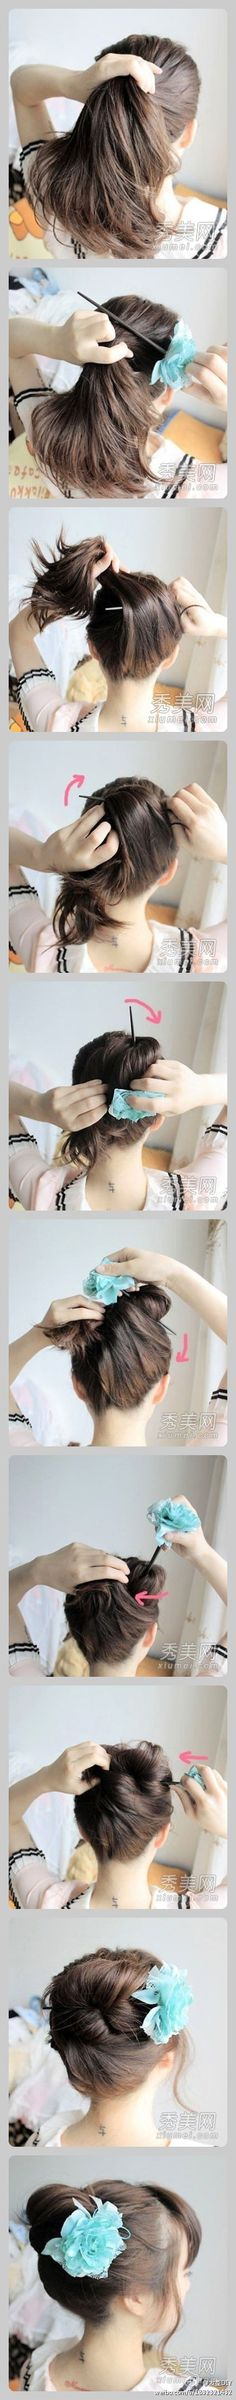 Hair Bun with a Stick tutorial